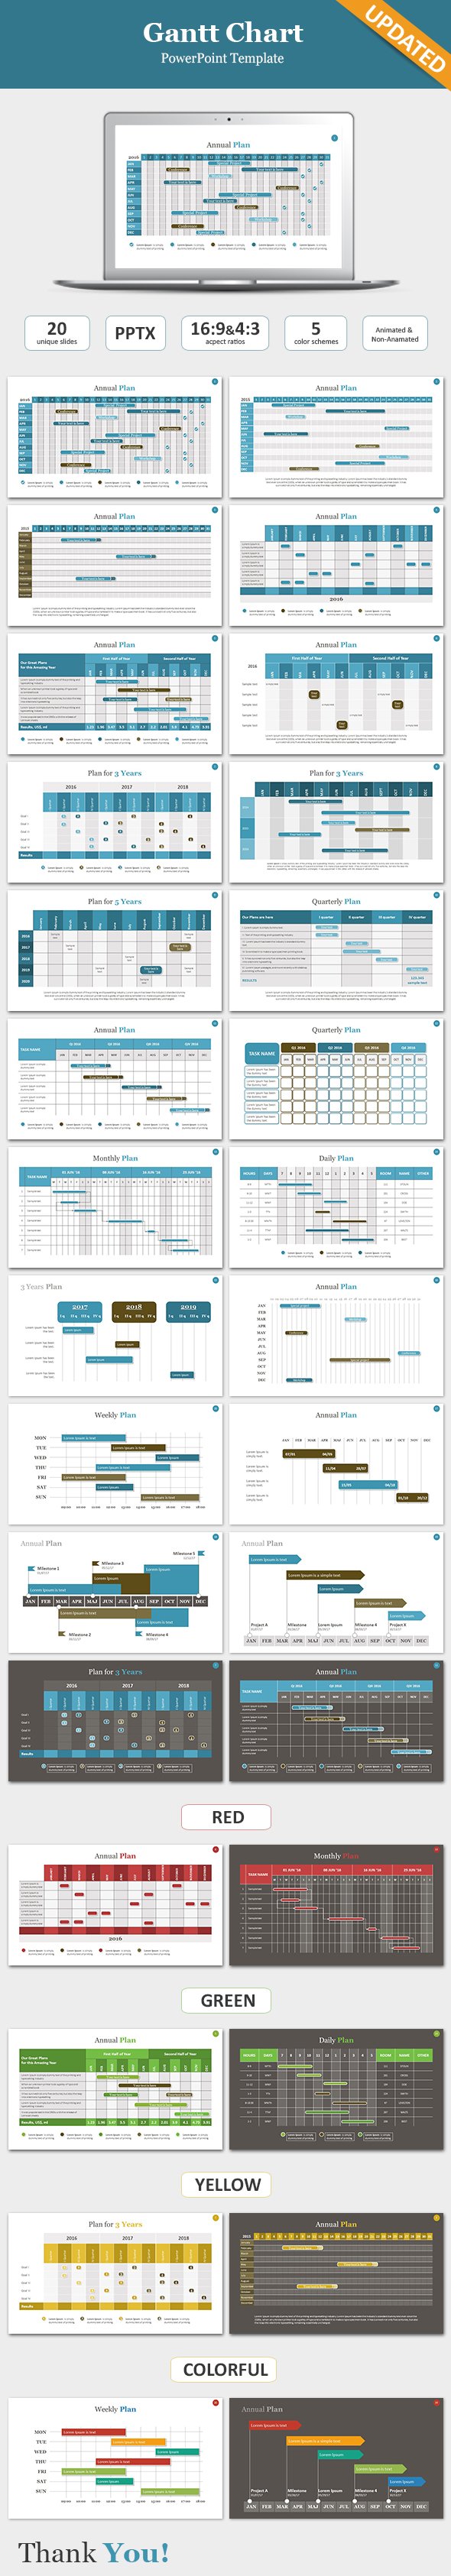 Gantt chart powerpoint template by sananik graphicriver gantt chart powerpoint template powerpoint templates presentation templates toneelgroepblik Images